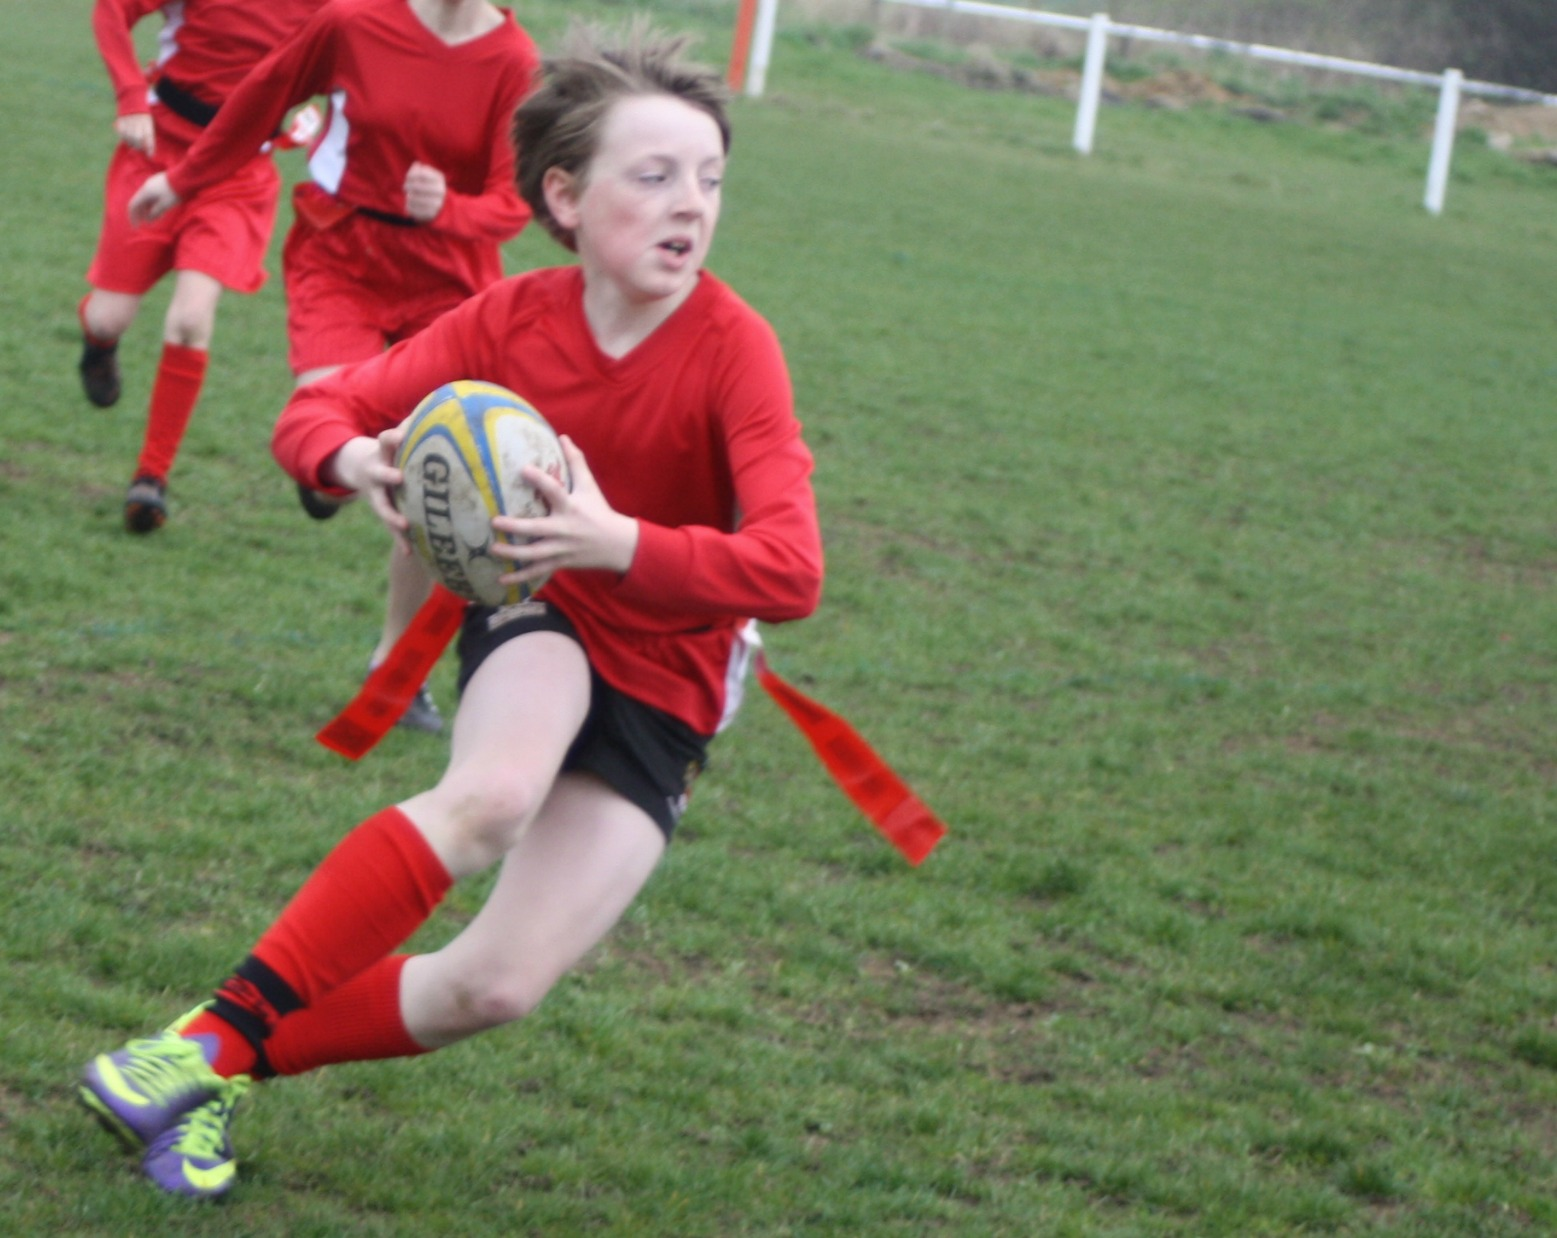 Son, rugby, tournament, school